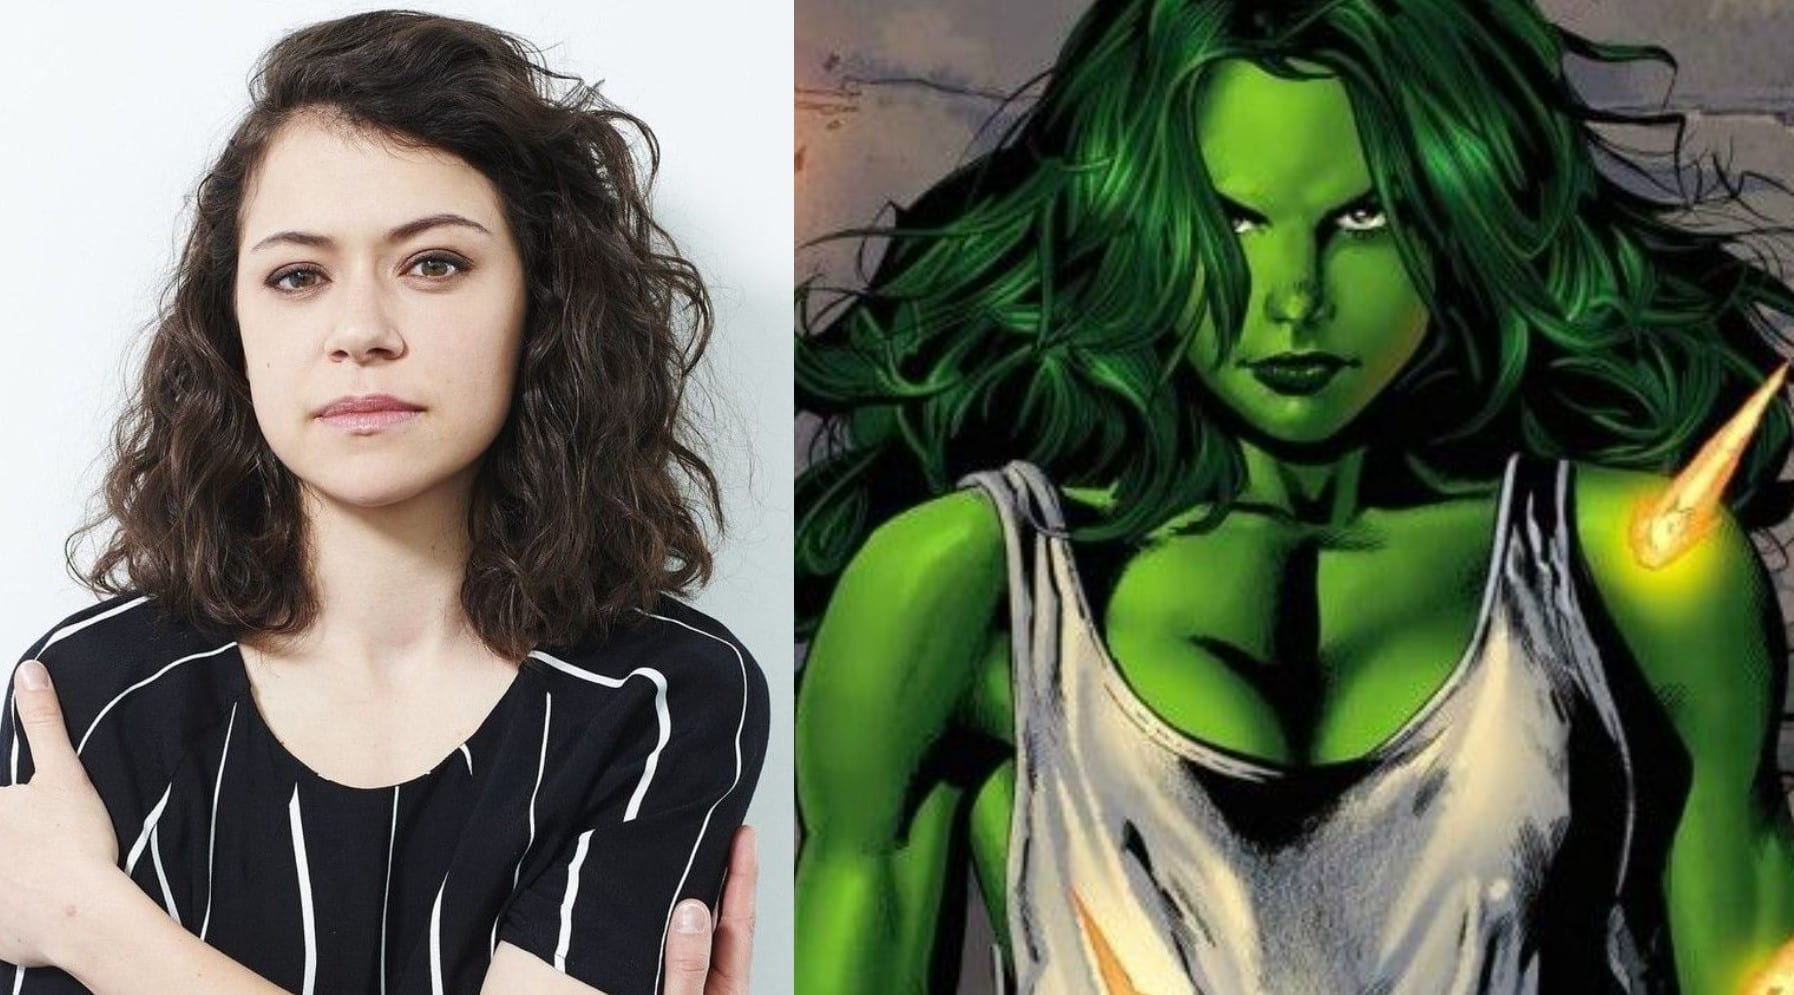 Tatiana Maslany to play She-Hulk in Disney+ series